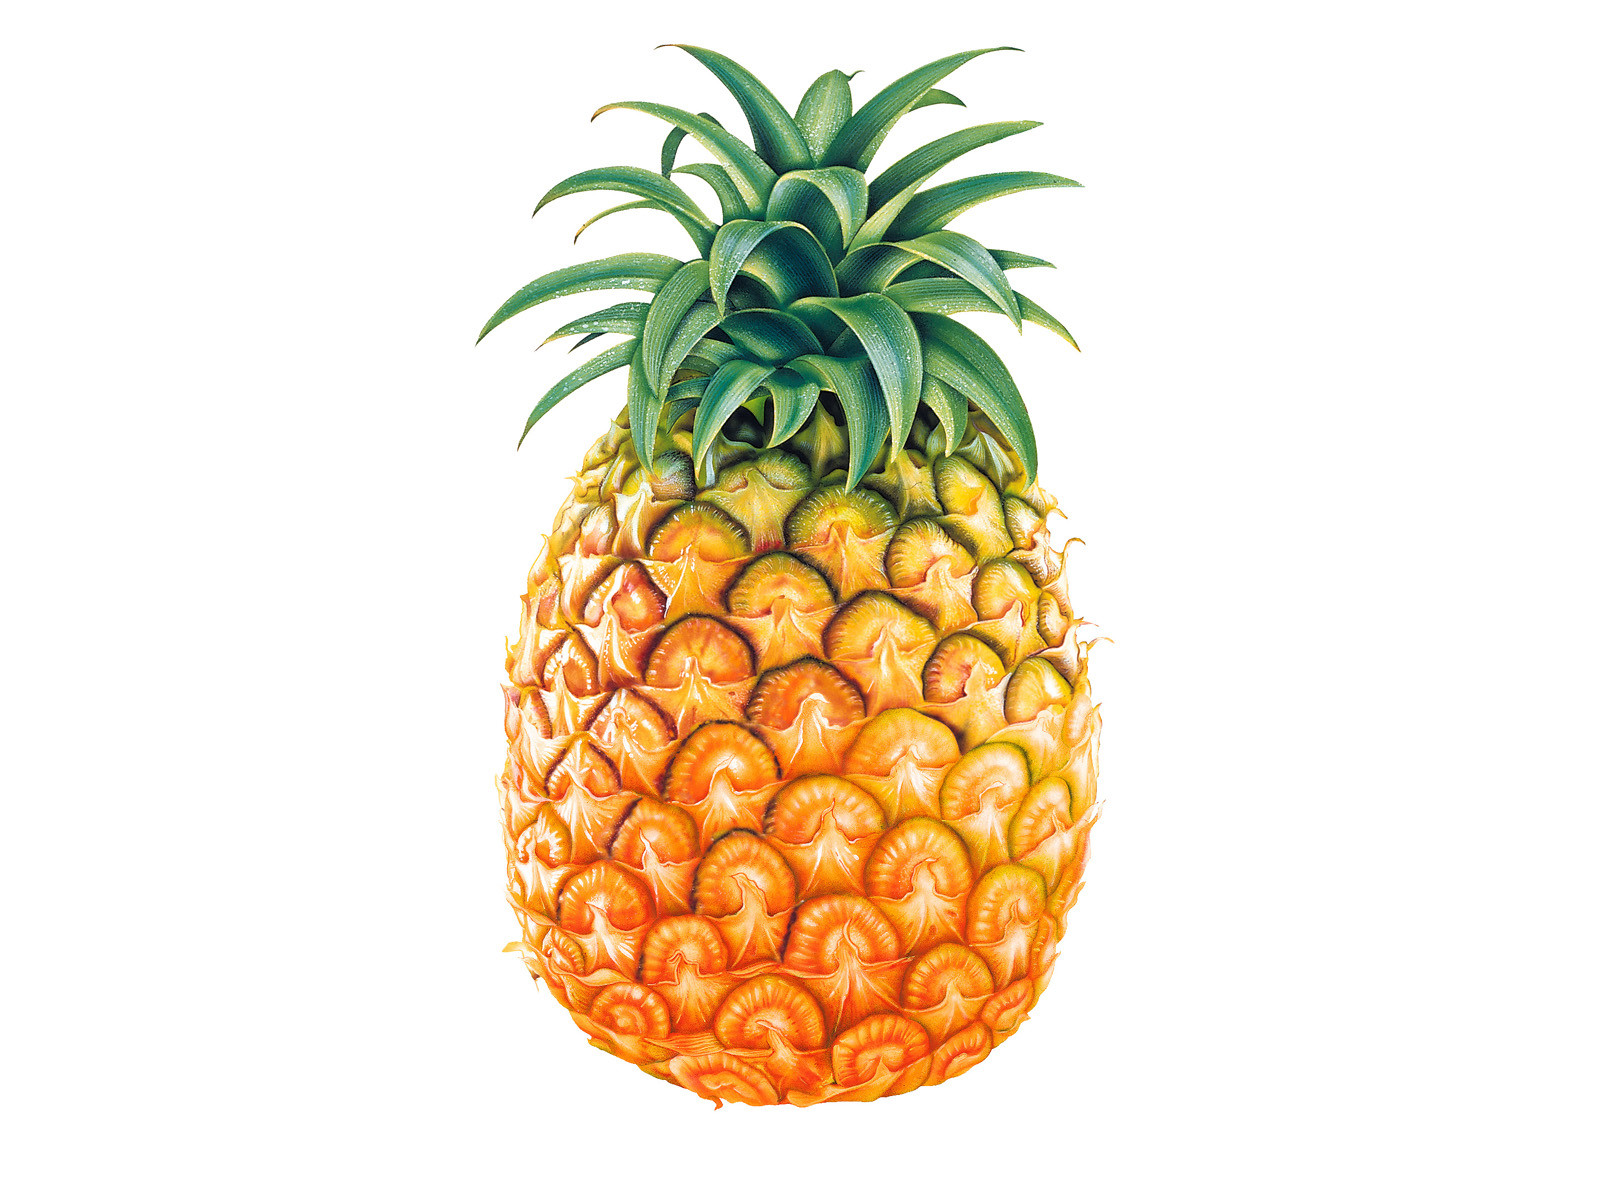 Amazing Pineapple Pictures & Backgrounds